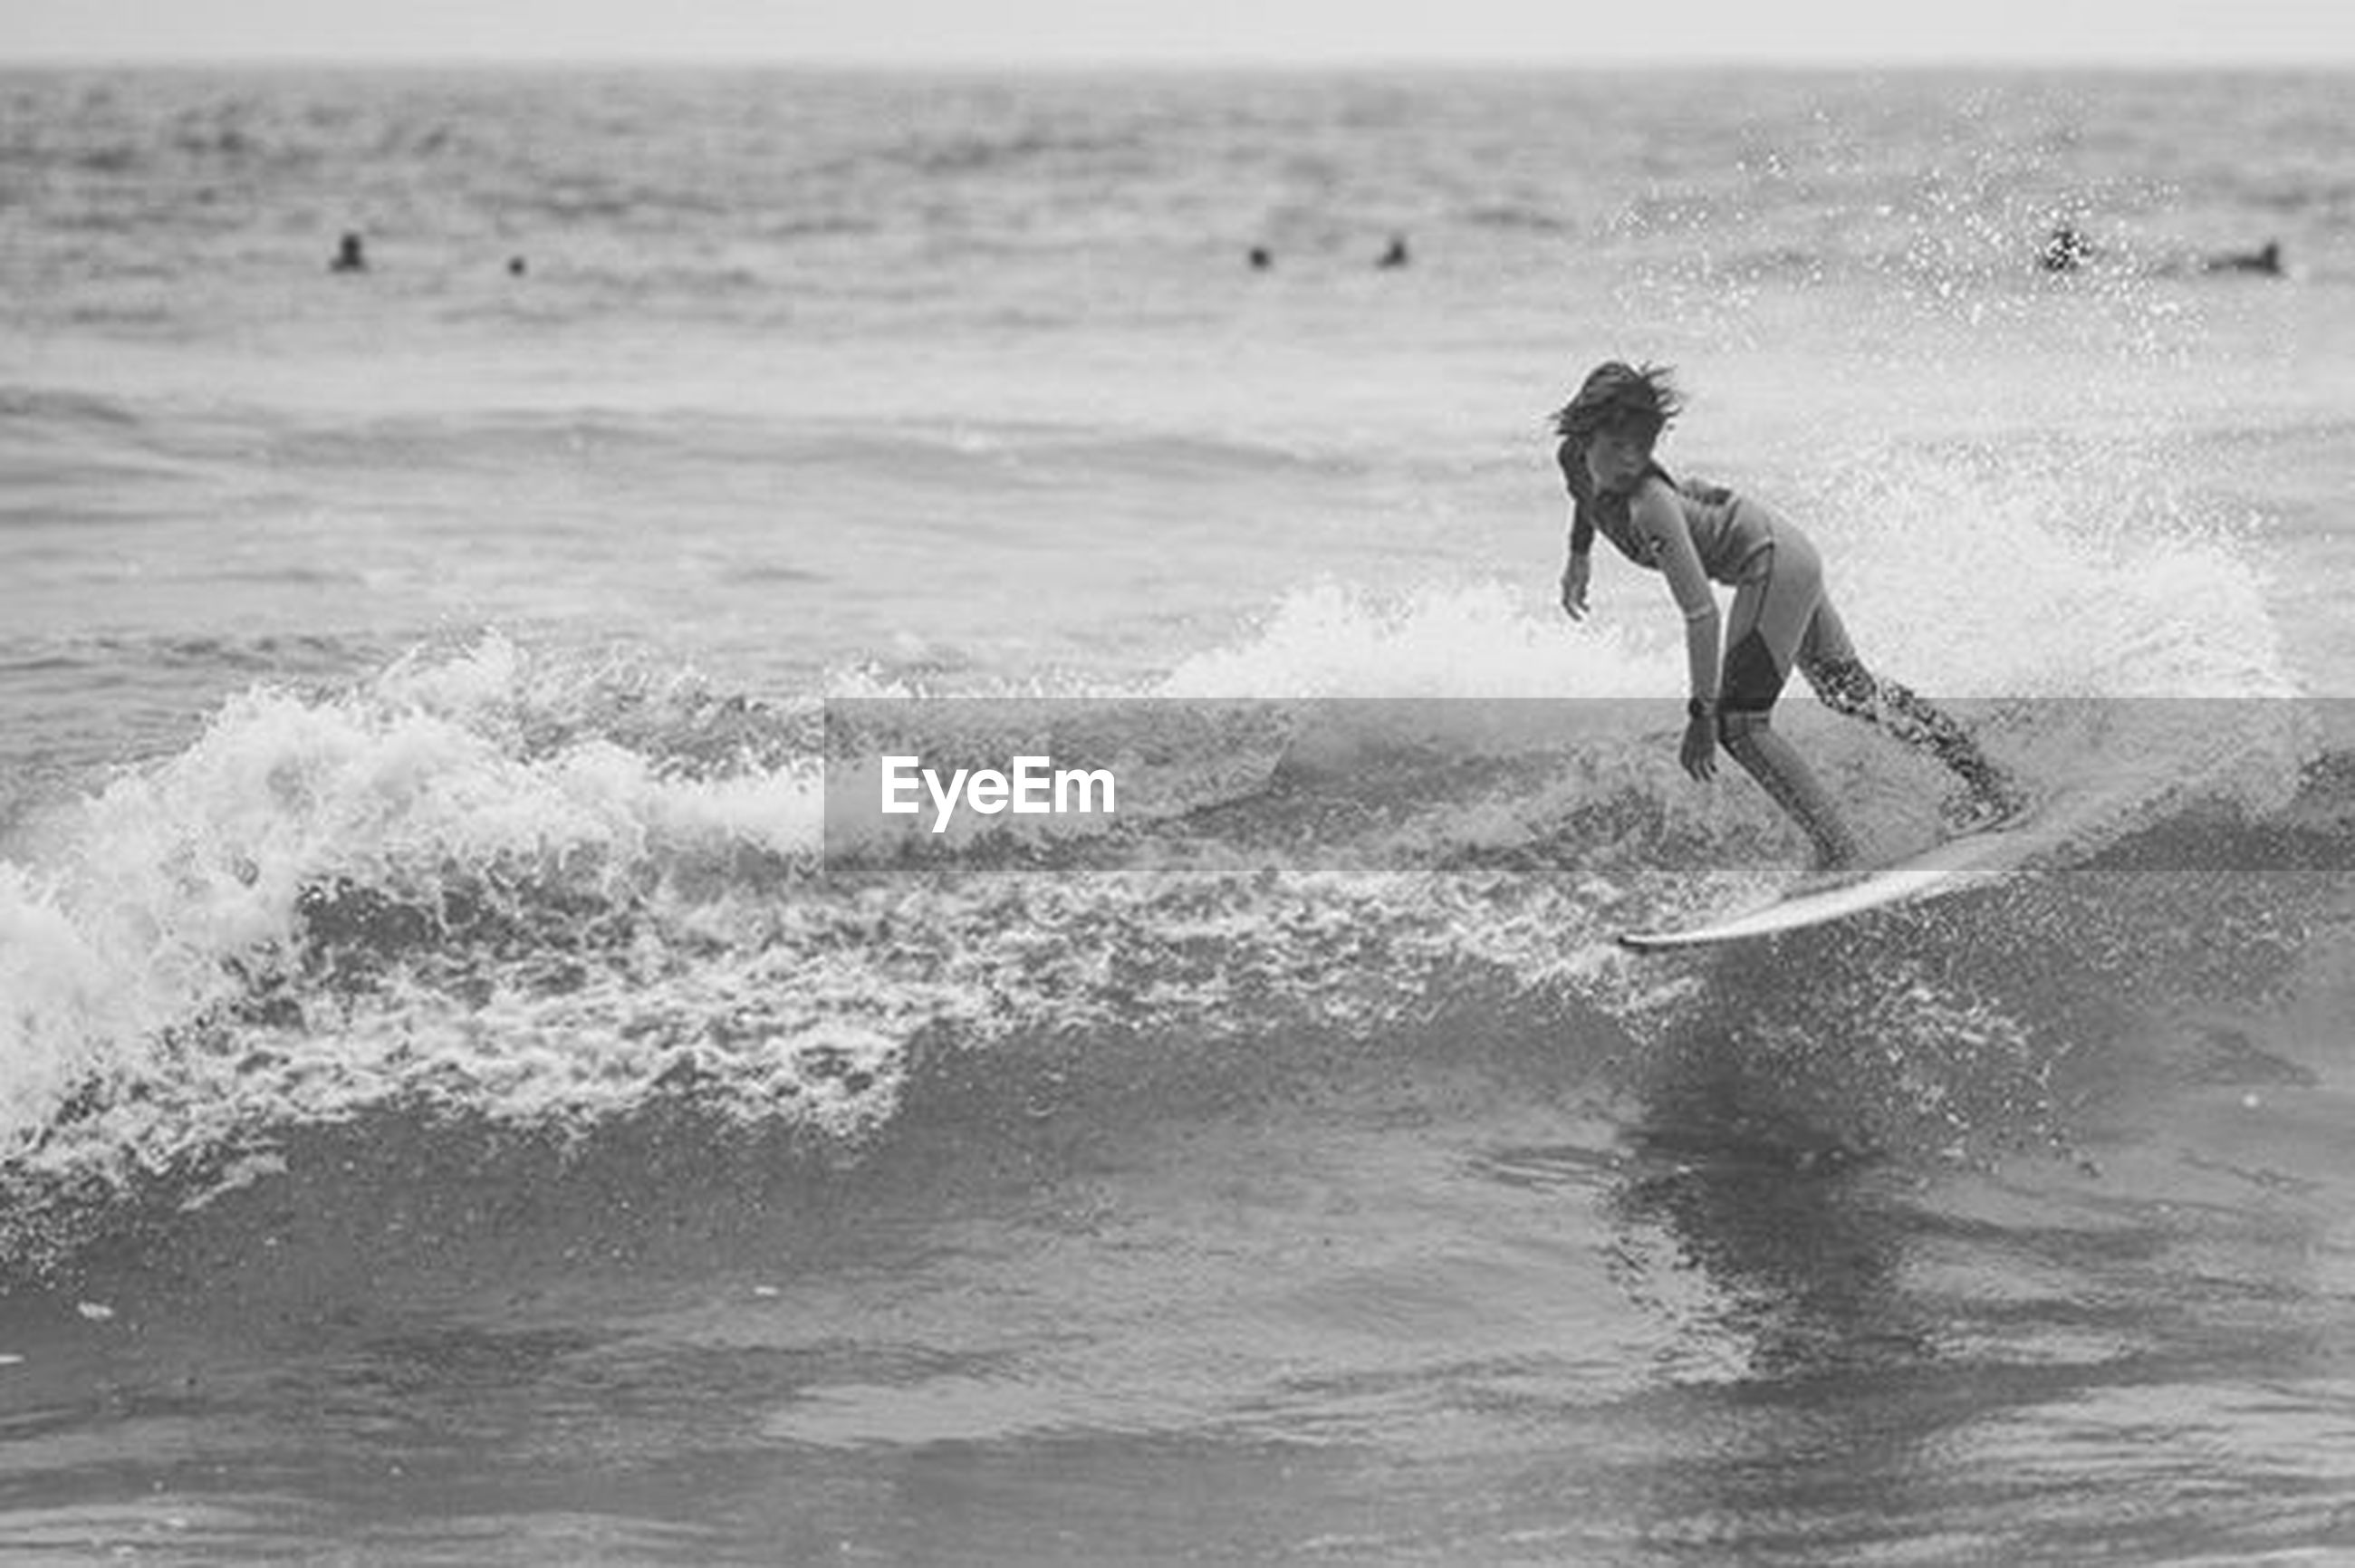 water, sea, wave, beach, surf, horizon over water, waterfront, shore, motion, leisure activity, nature, vacations, lifestyles, surfboard, splashing, surfing, beauty in nature, men, enjoyment